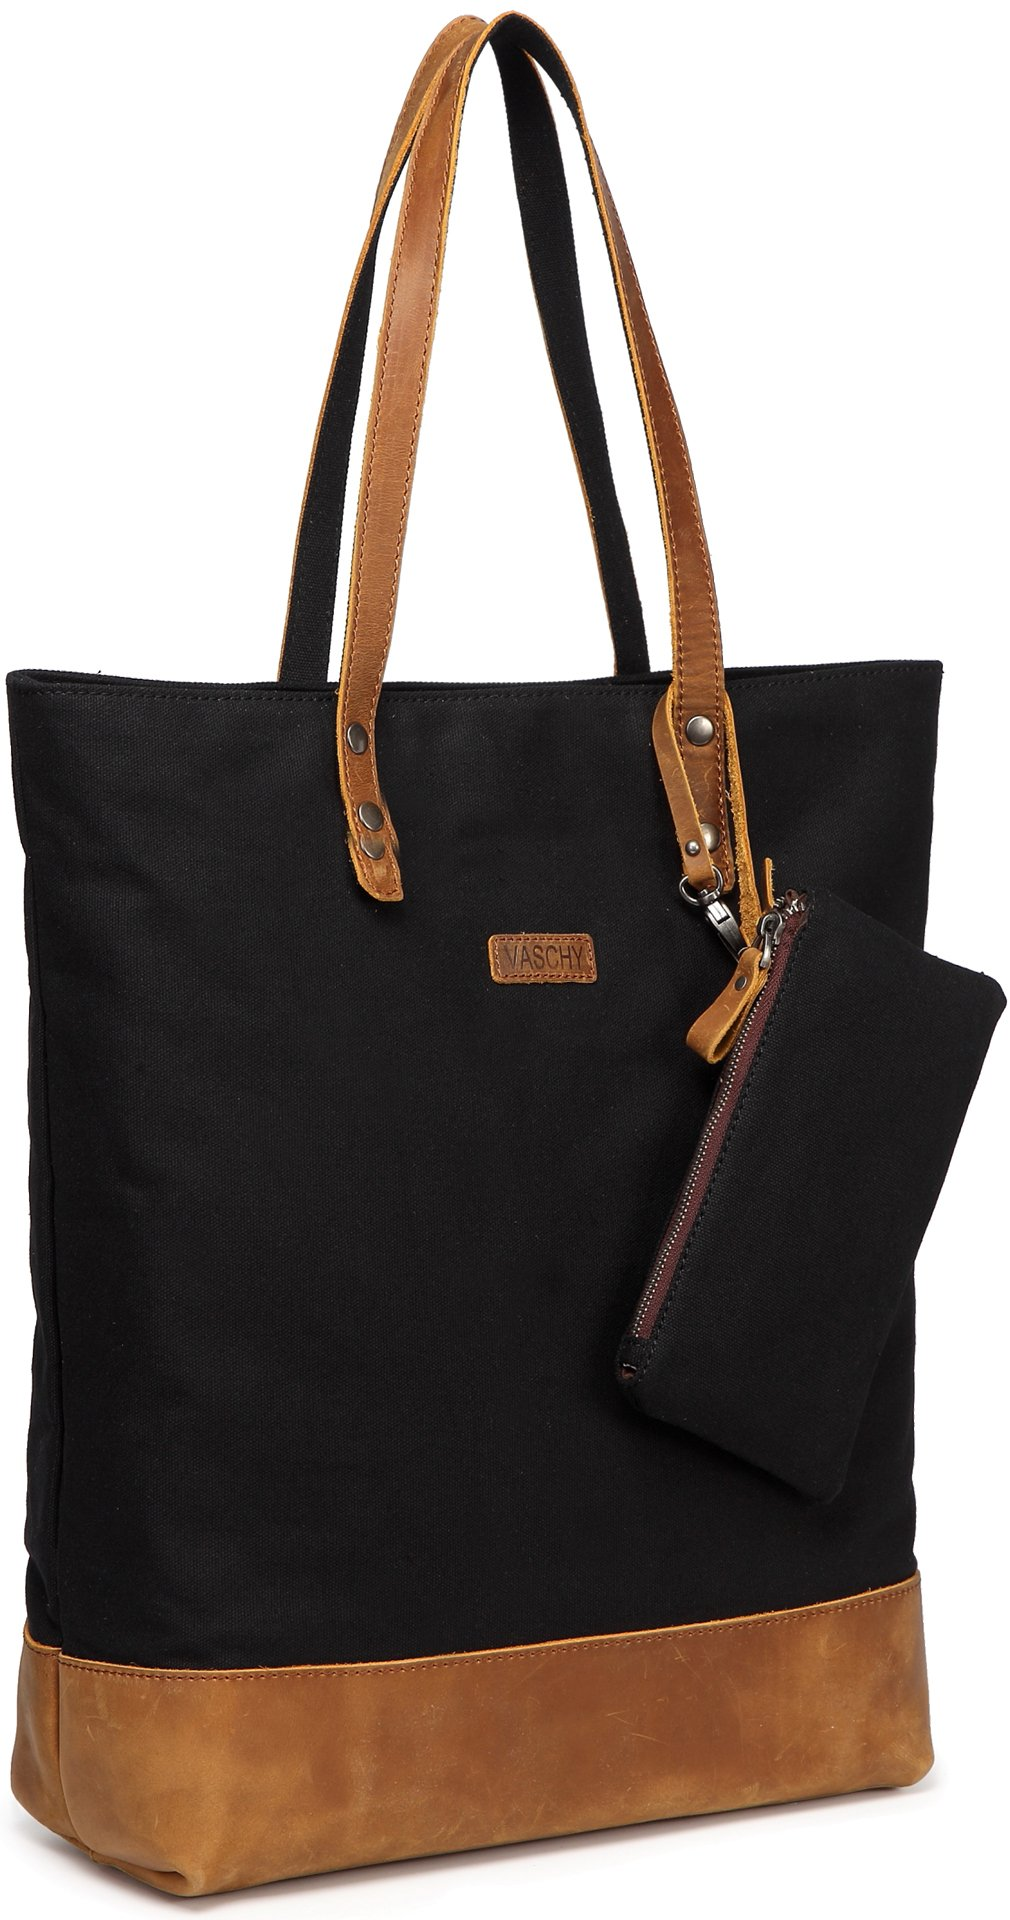 Leather Canvas Tote,Vaschy Vintage Soft Cotton Canvas Large Shopper Work Tote for Women